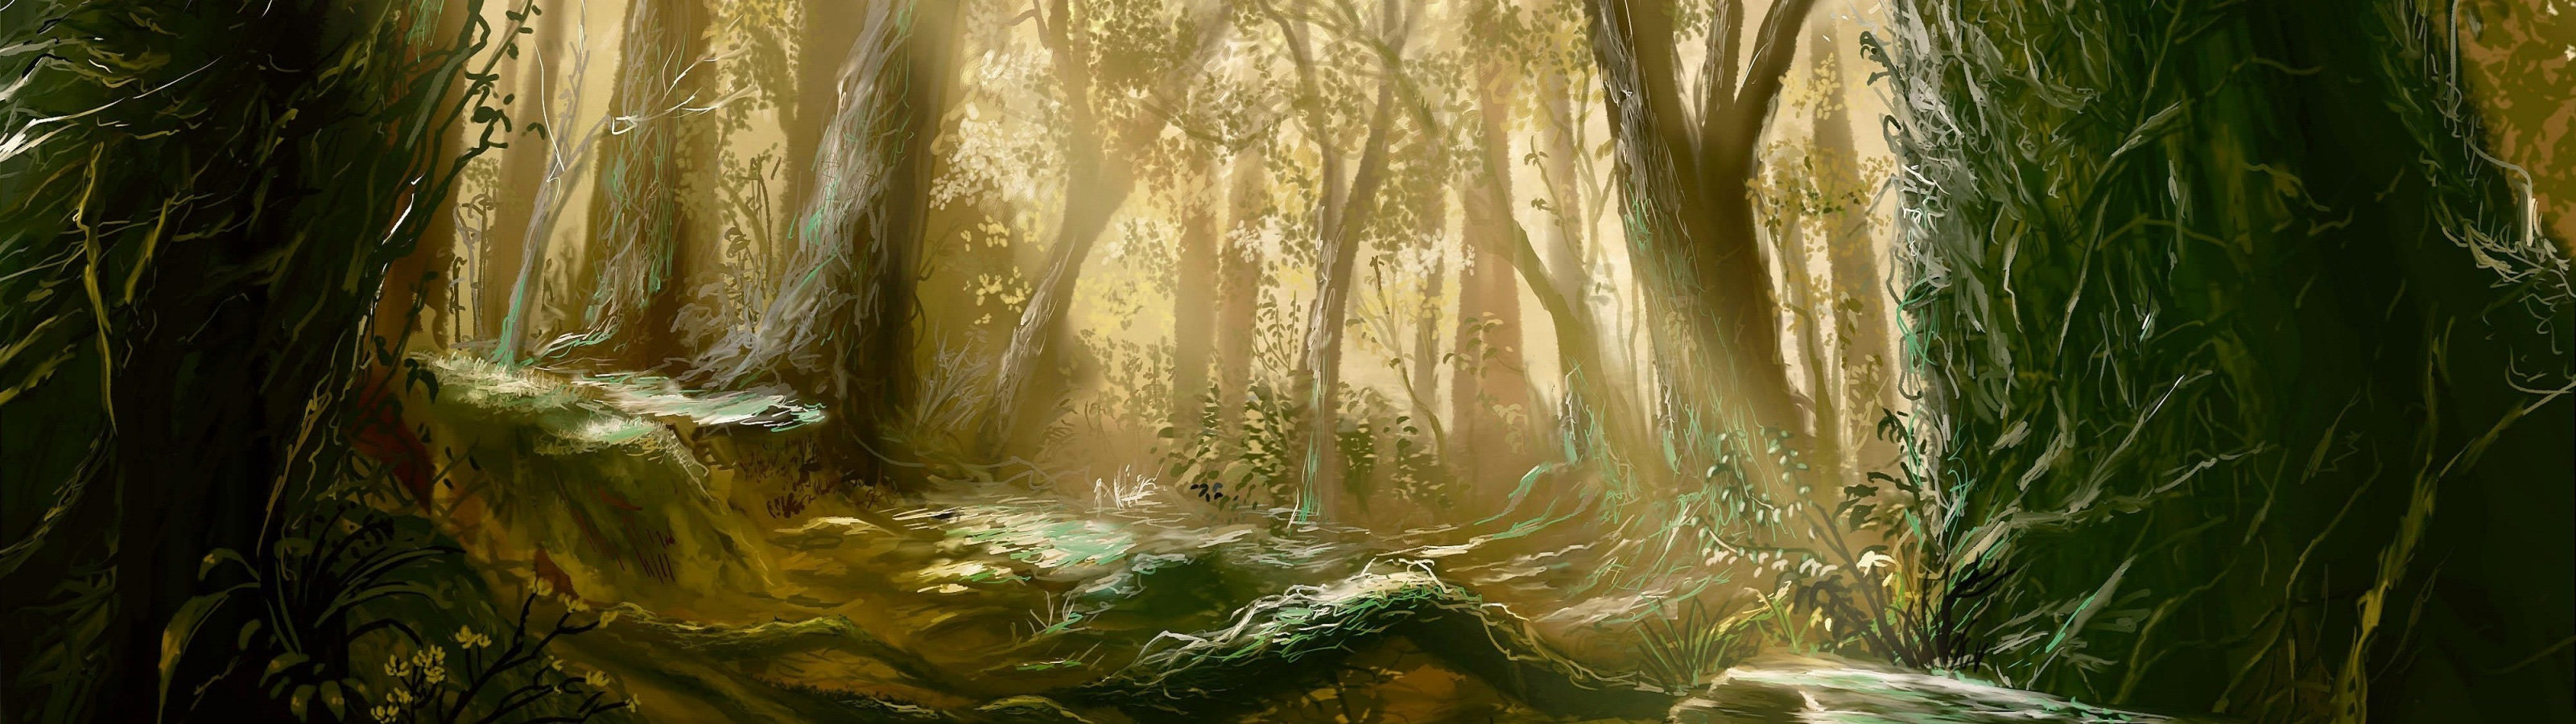 Awesome Mushishi free wallpaper ID:457666 for dual monitor 3200x900 PC